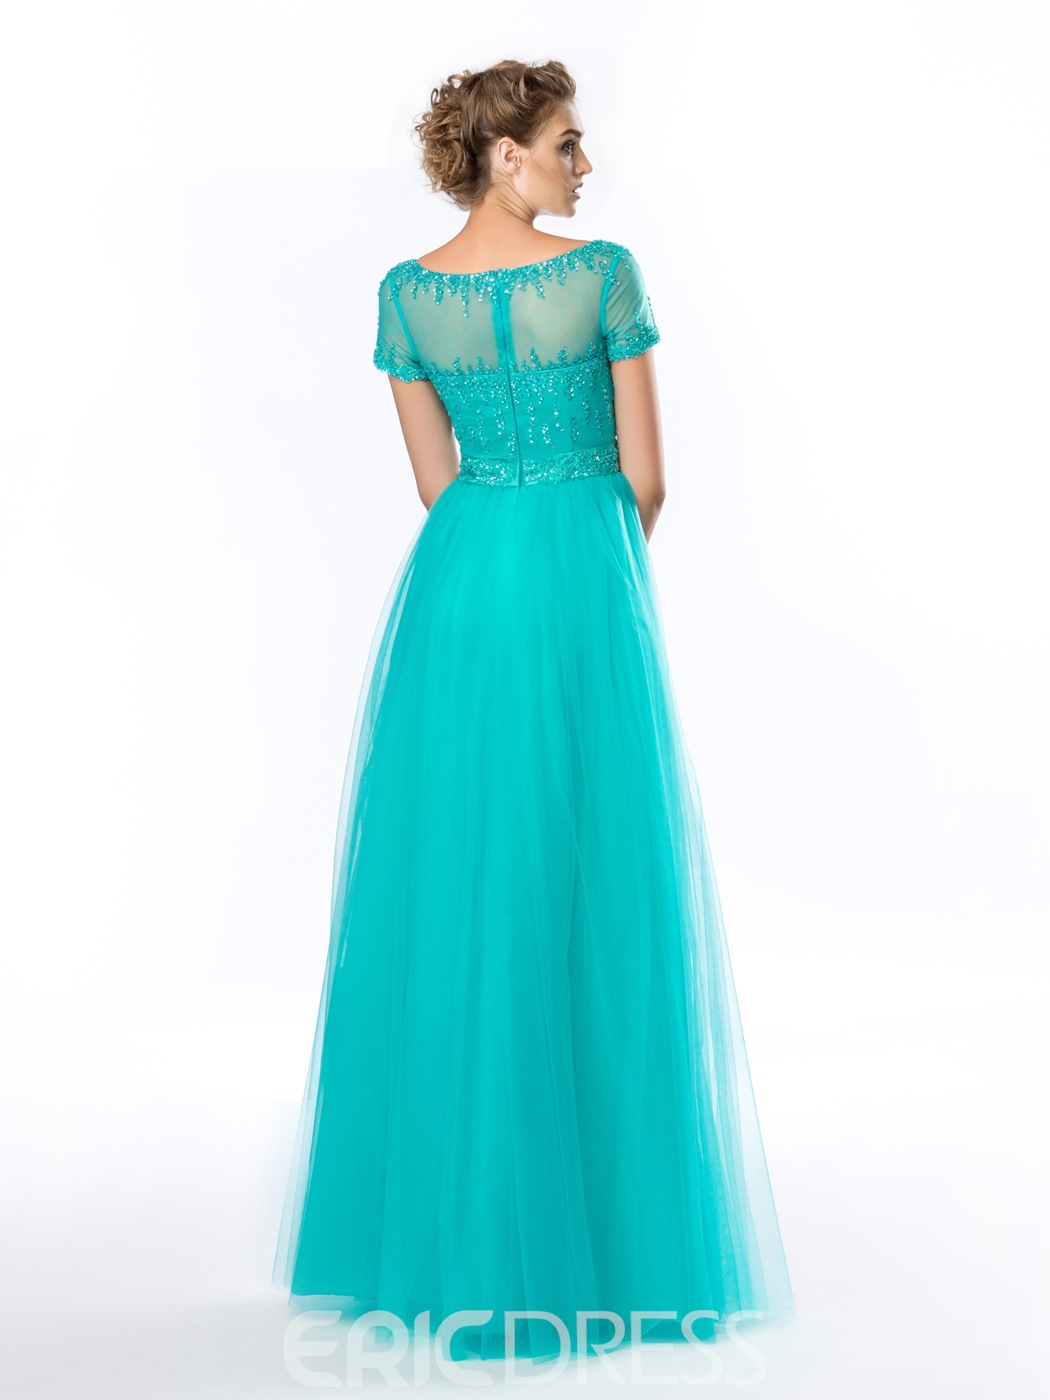 Classy A-Line Bateau Beading Short Sleeves Evening Dress